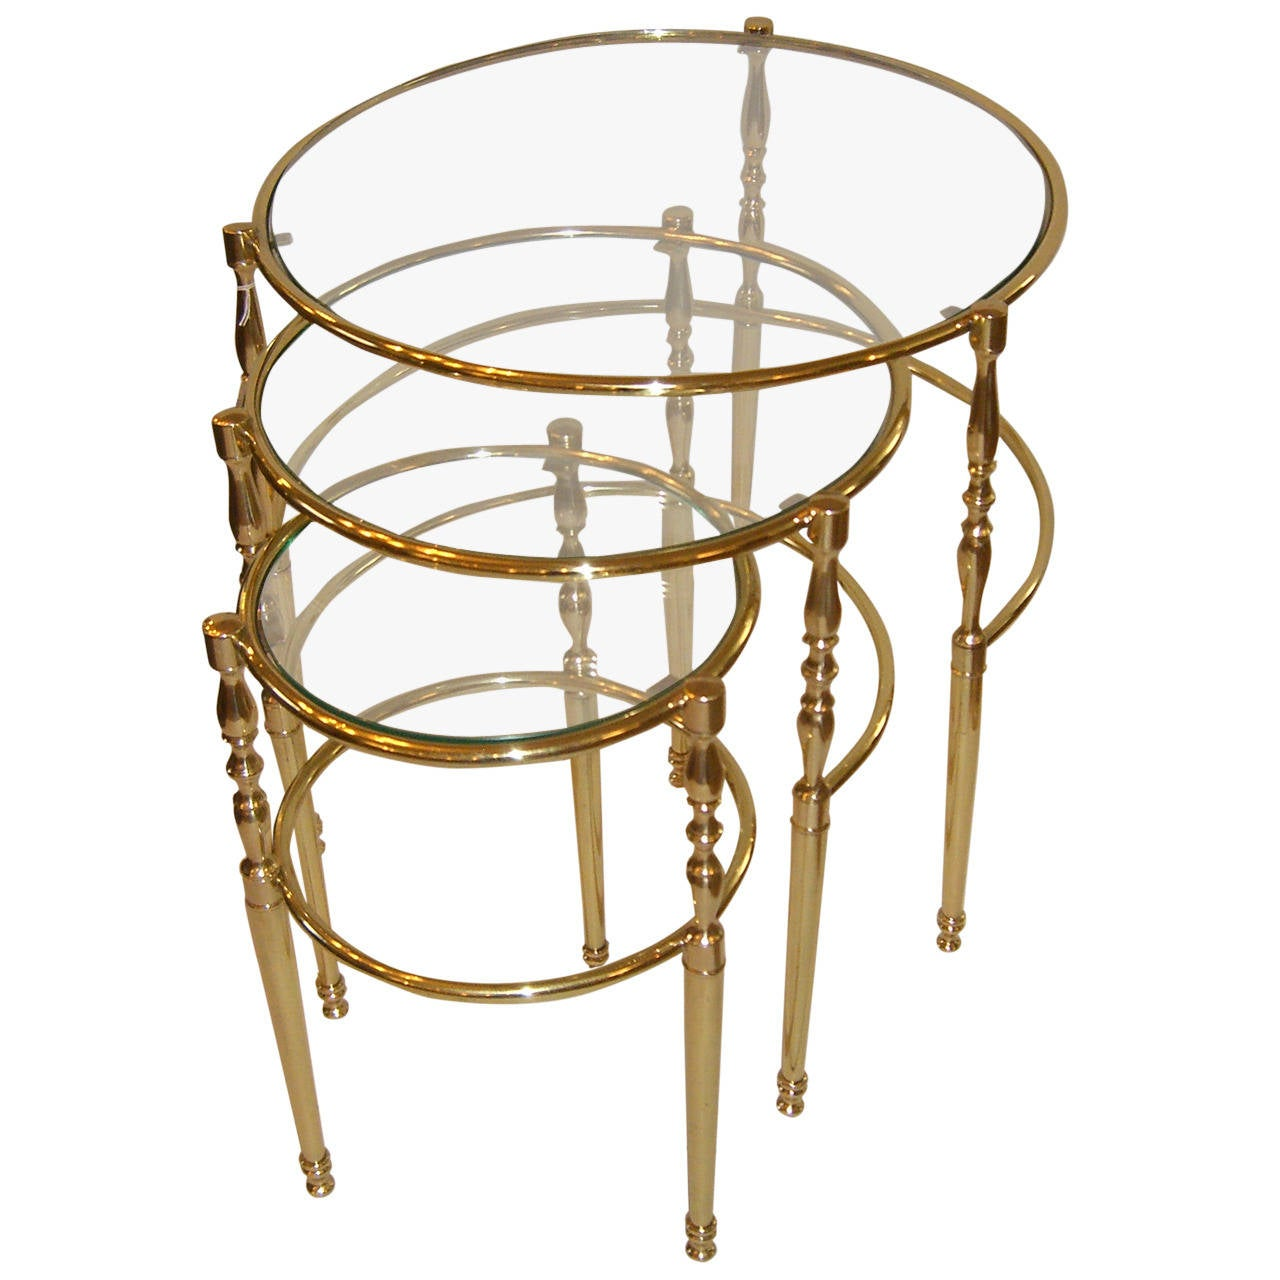 Vintage French Brass And Glass Circular Nesting Tables 1